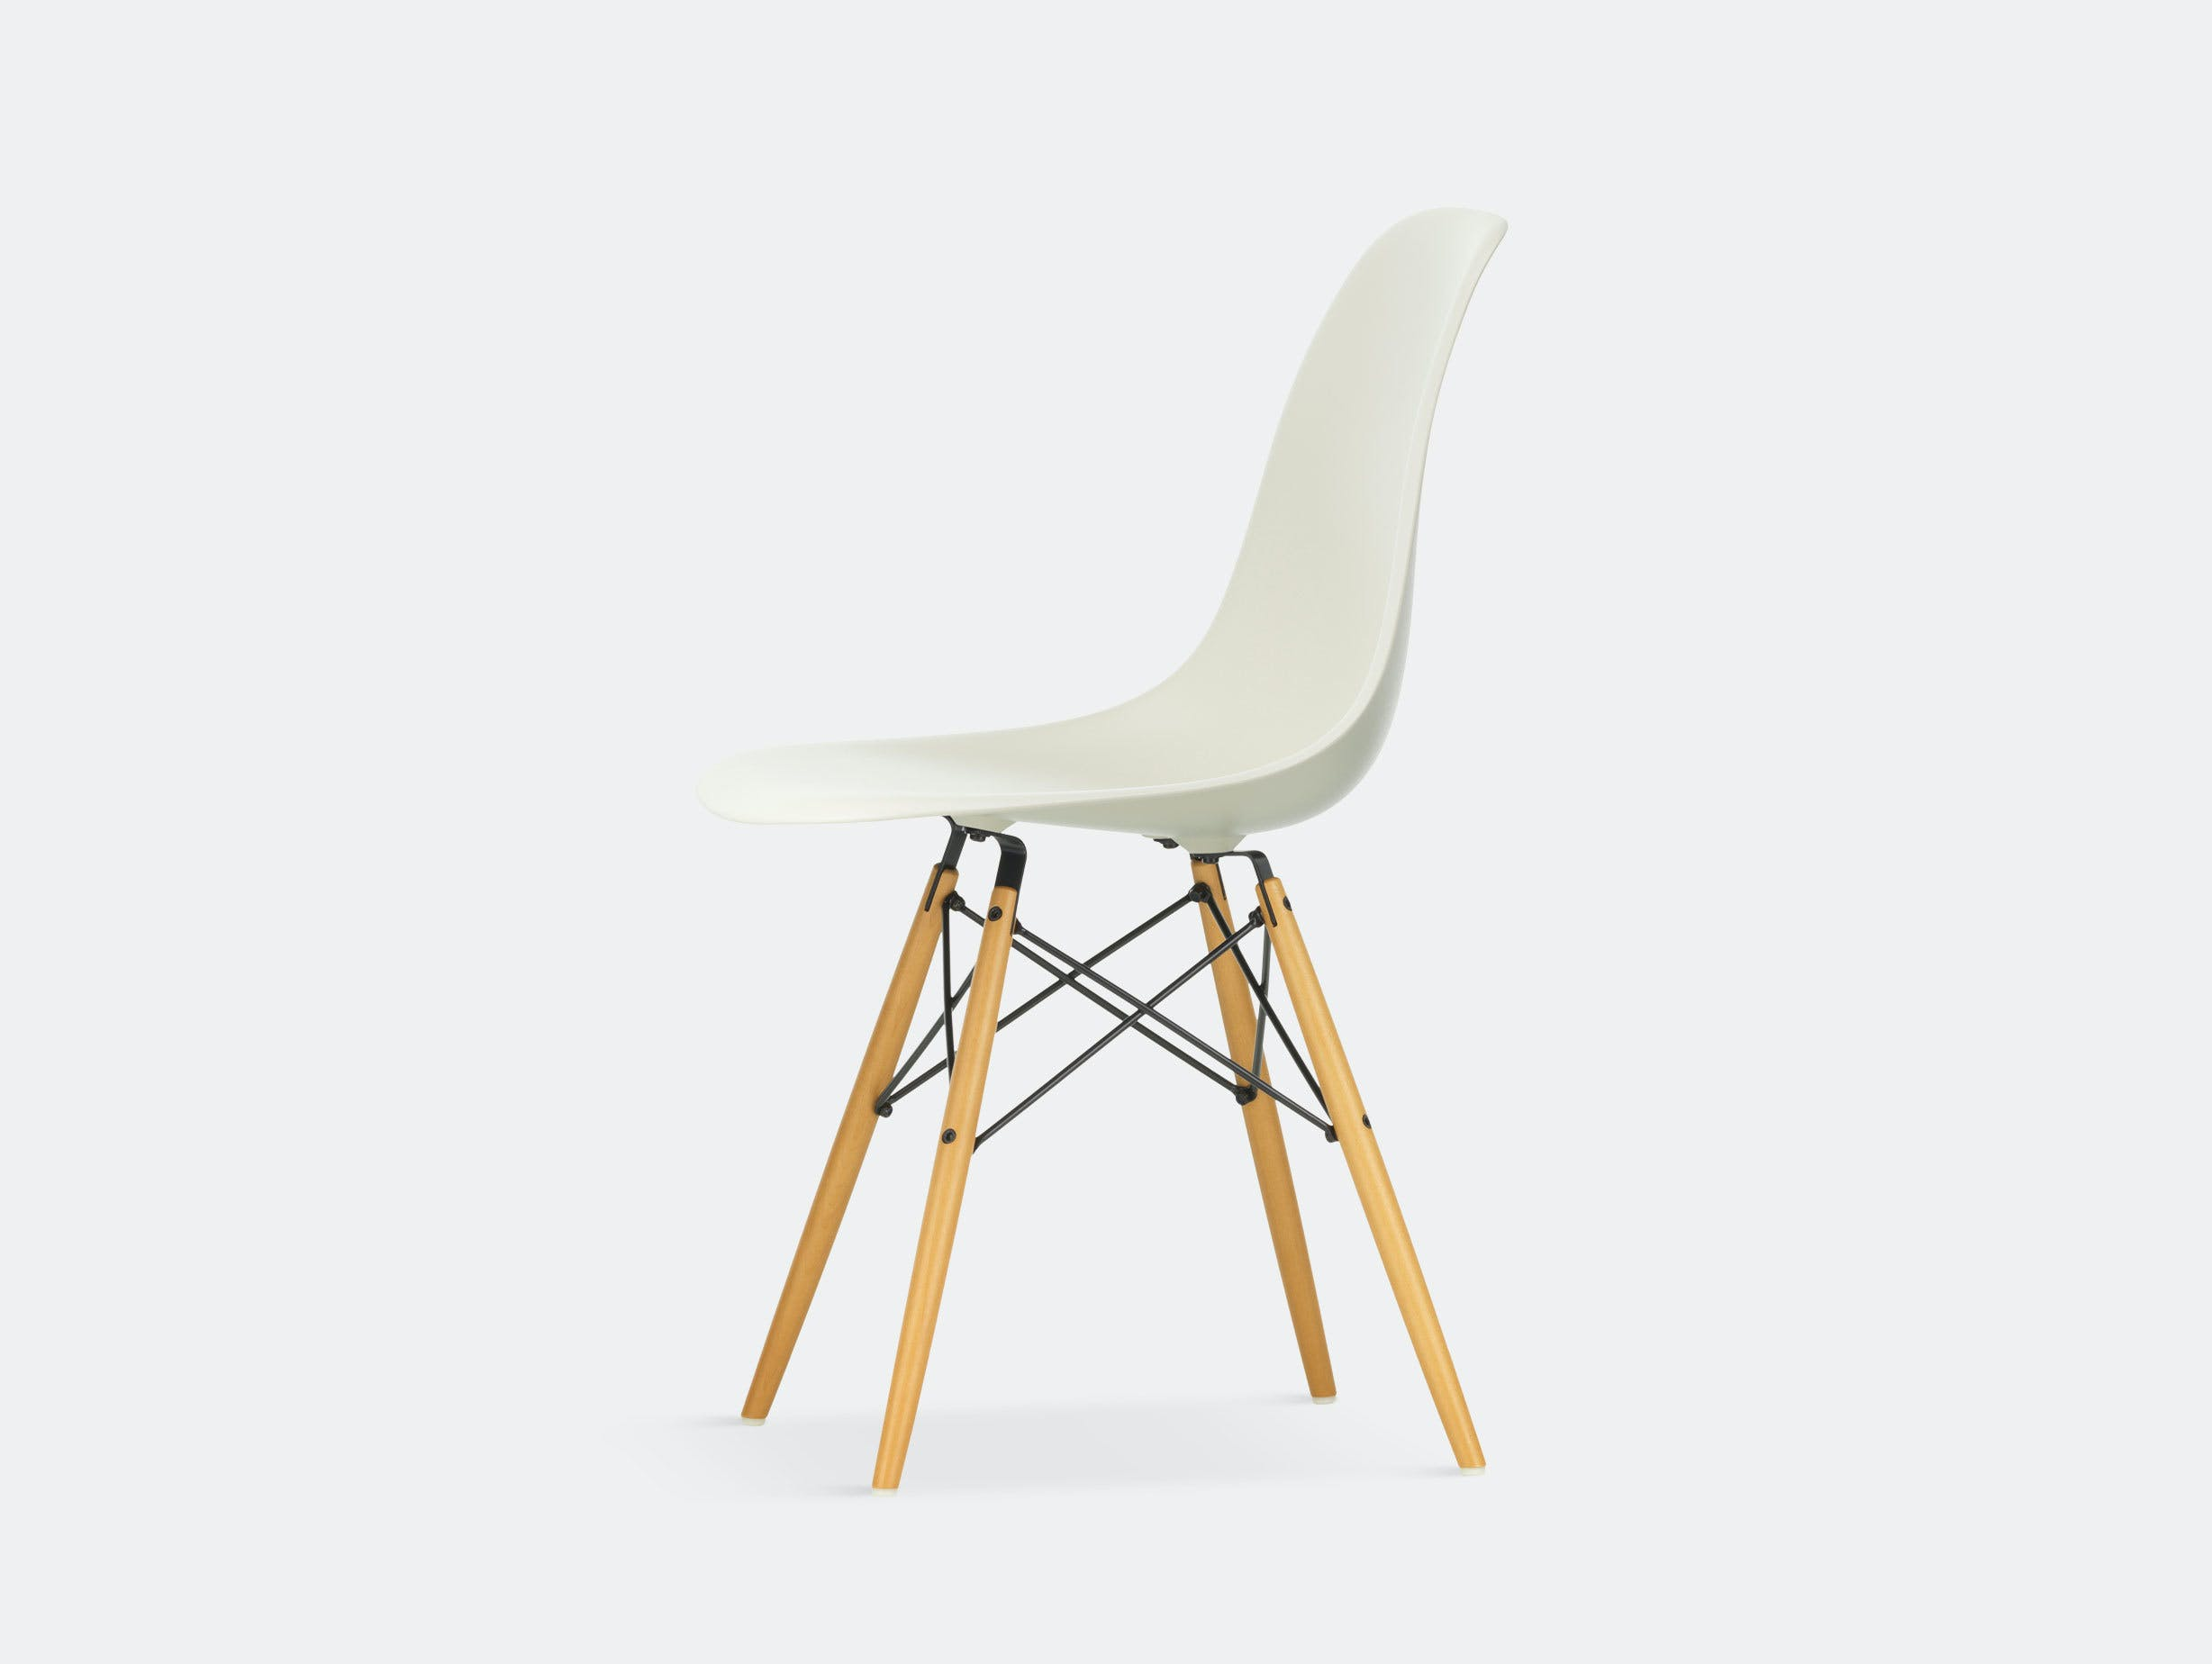 Vitra Eames DSW Plastic Side Chair pebble golden maple legs